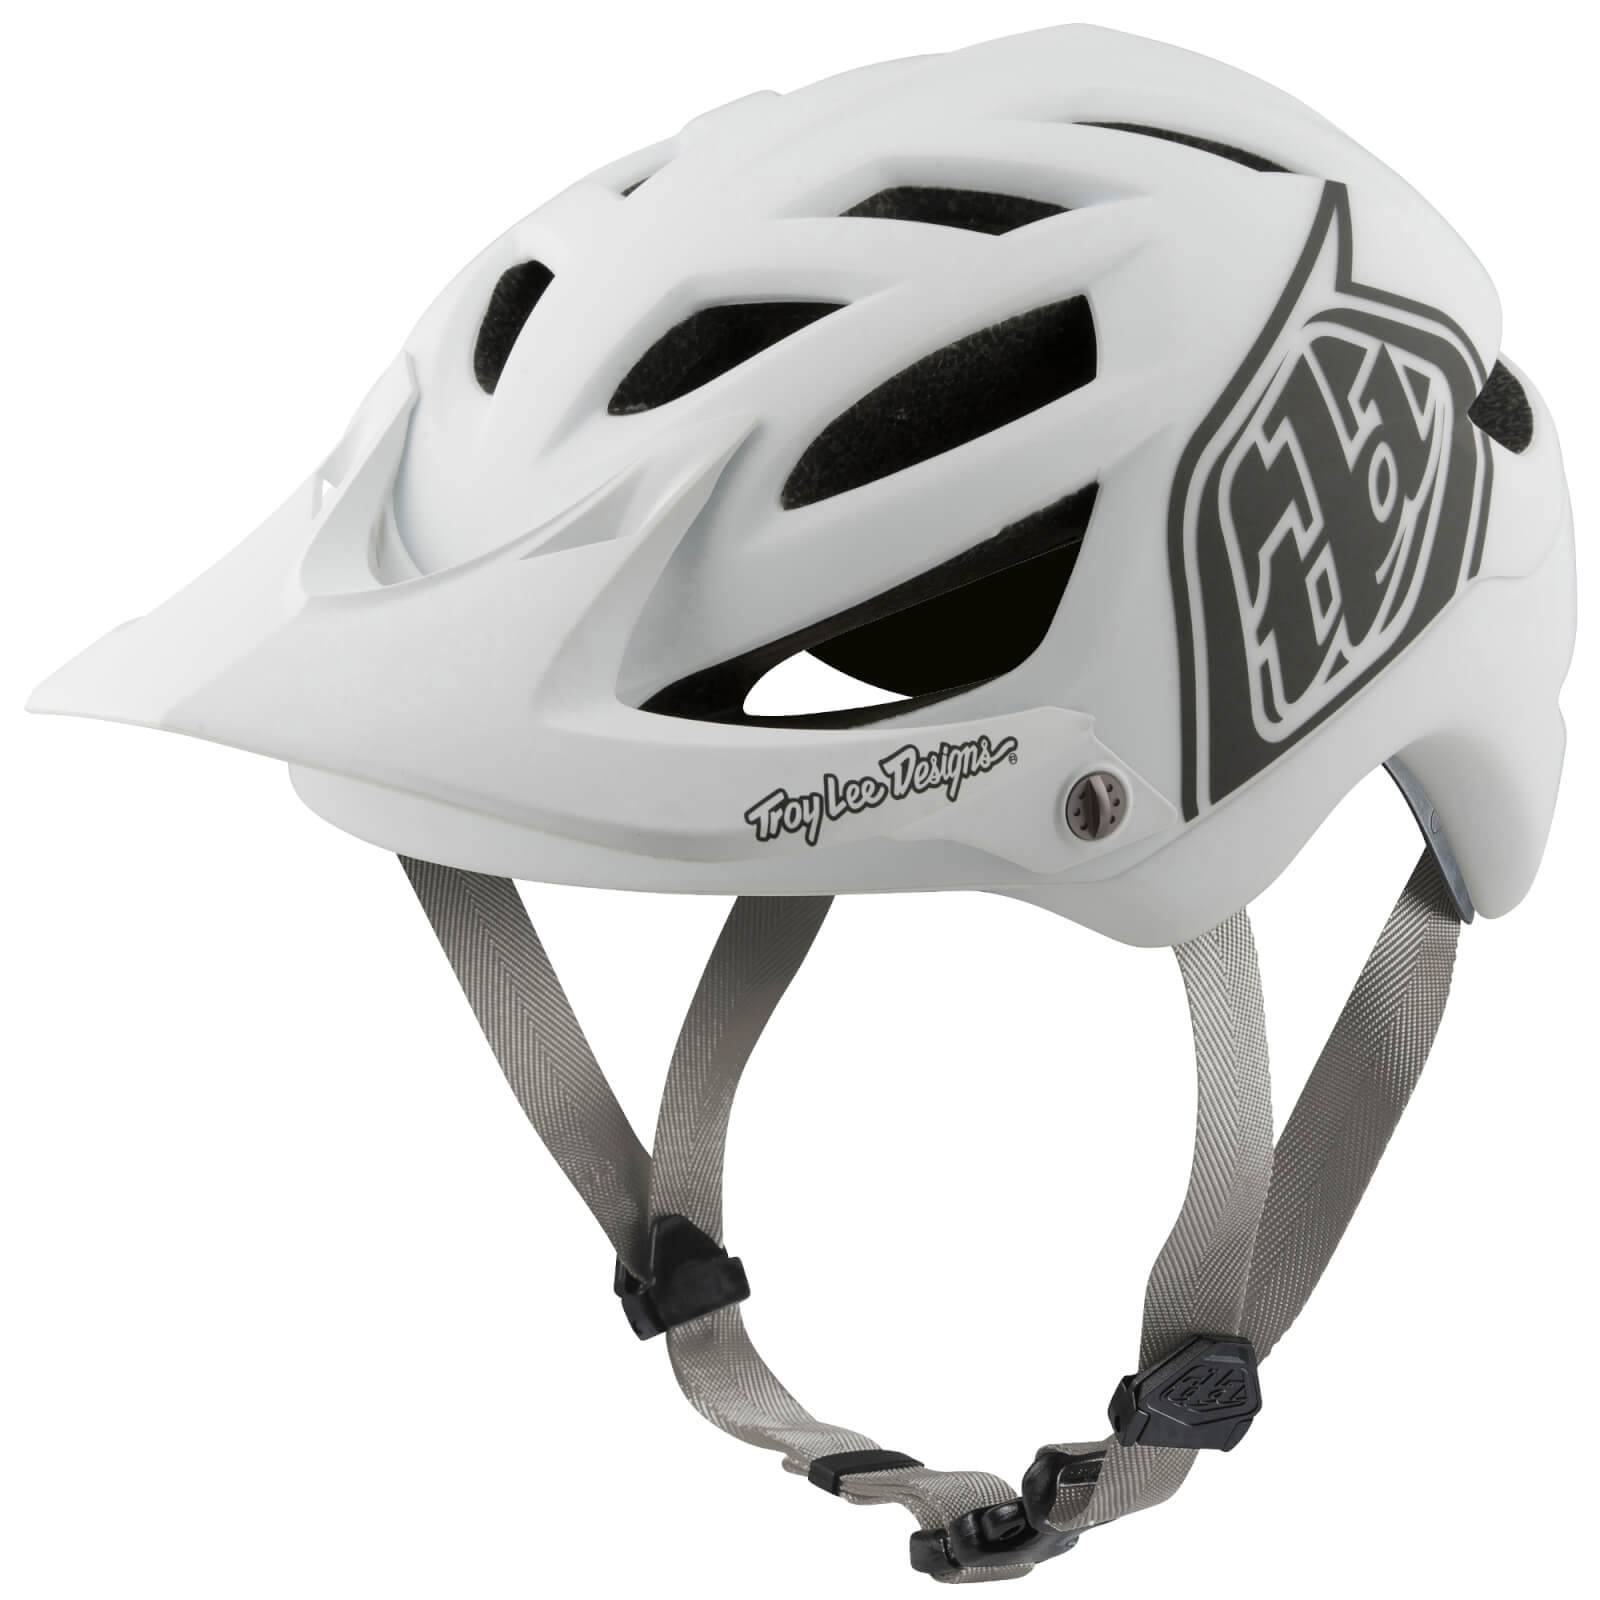 Lee Troy Lee Designs A1 MIPS Classic MTB Helmet - White - XL-XXL/60-63cm - White